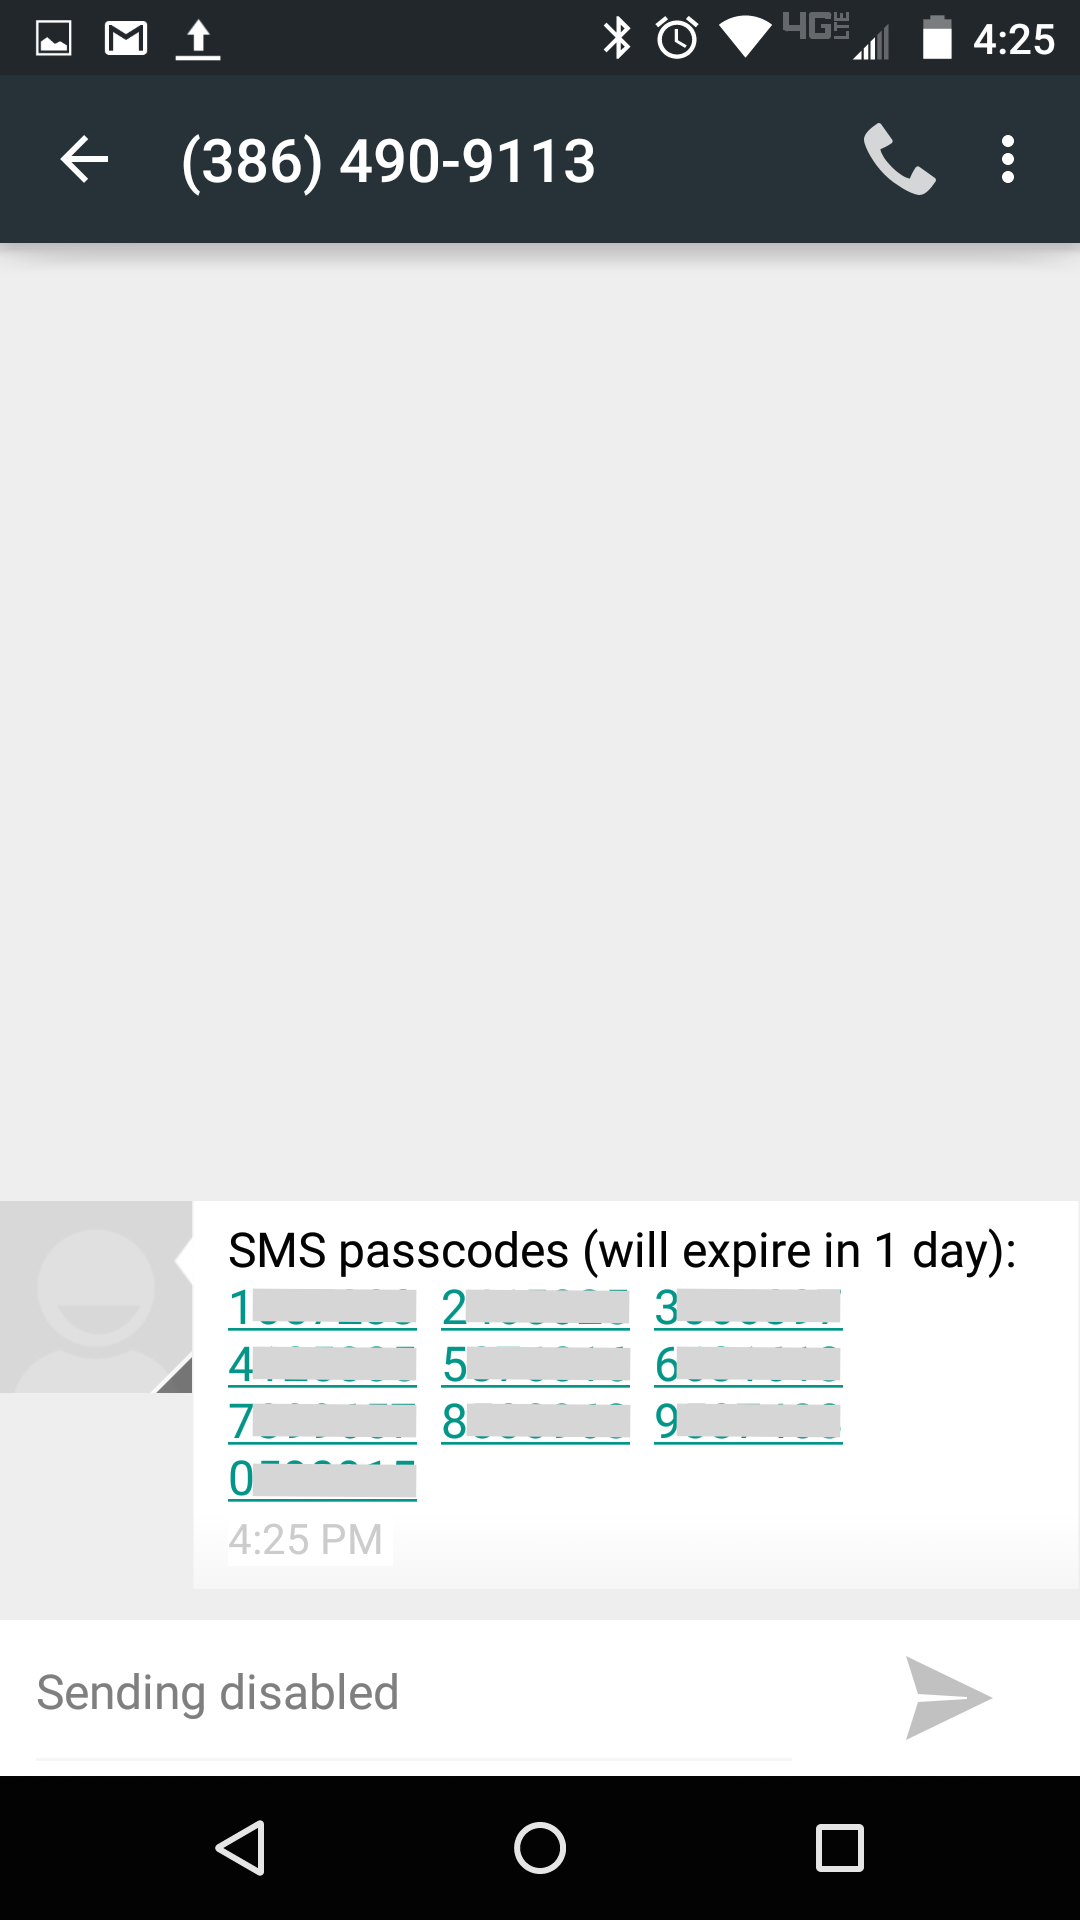 Mobile texting client with received passcodes.